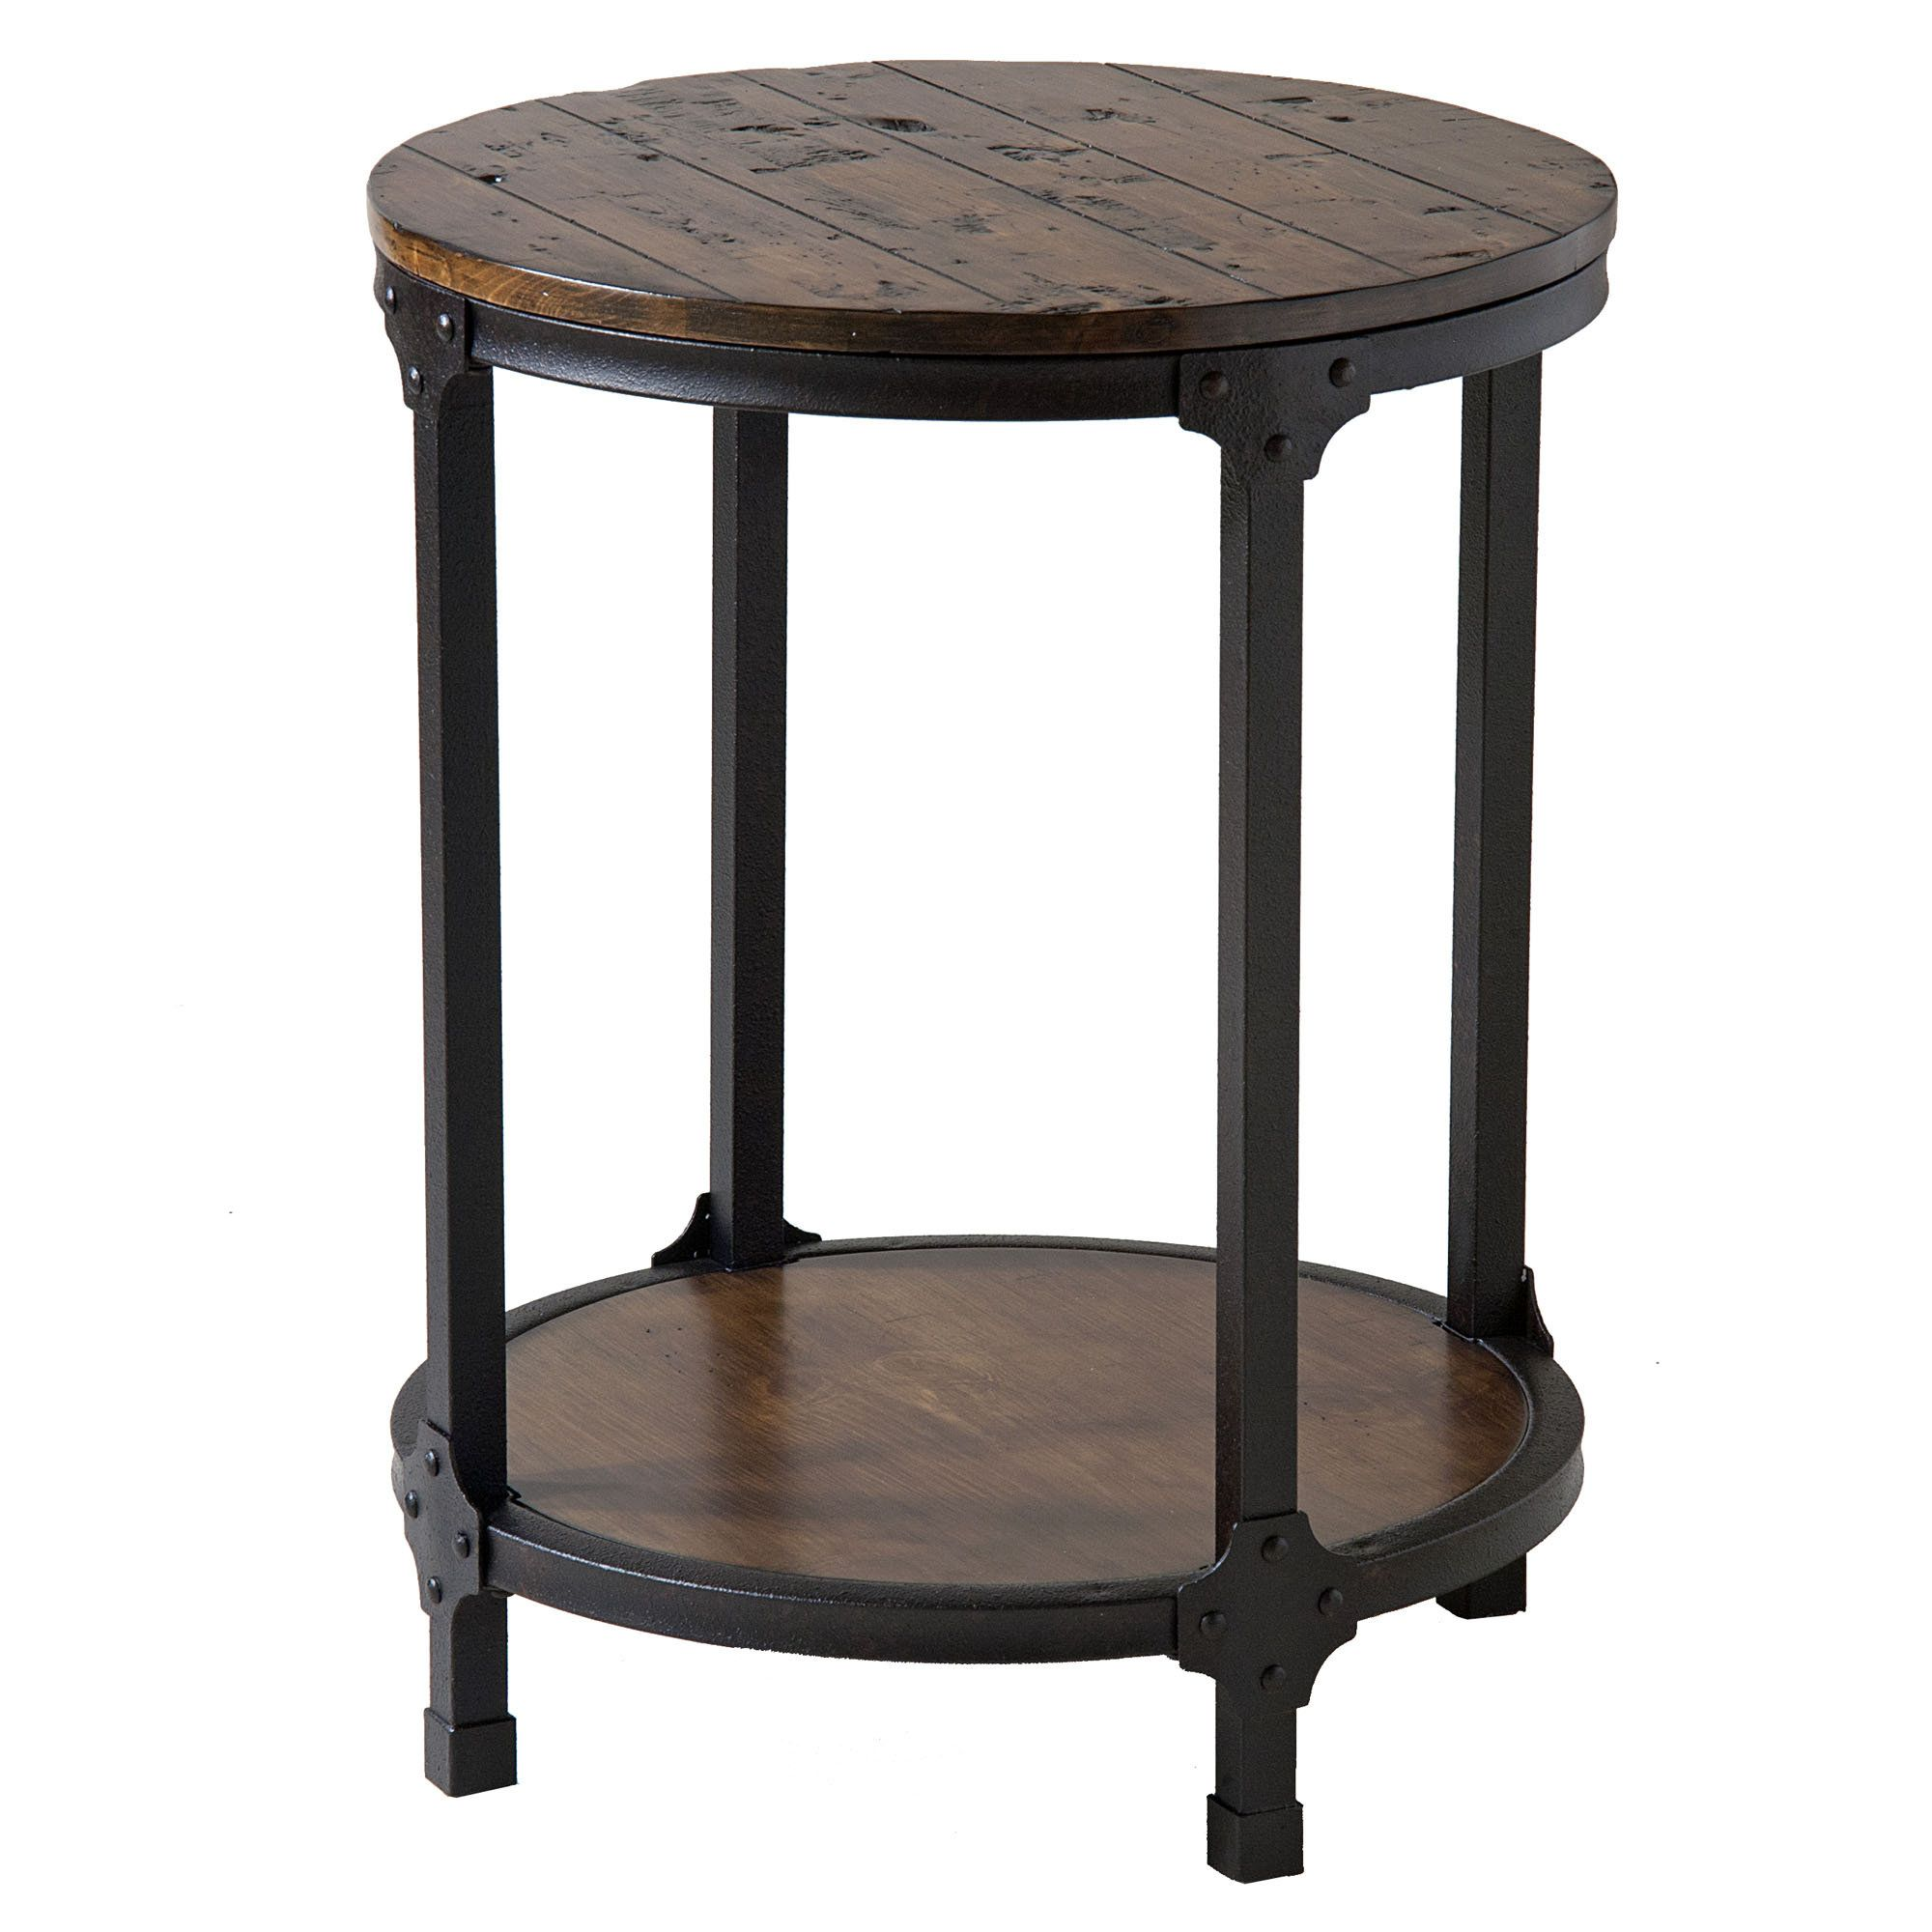 industrial metal round side table Home Macon Rustic Round